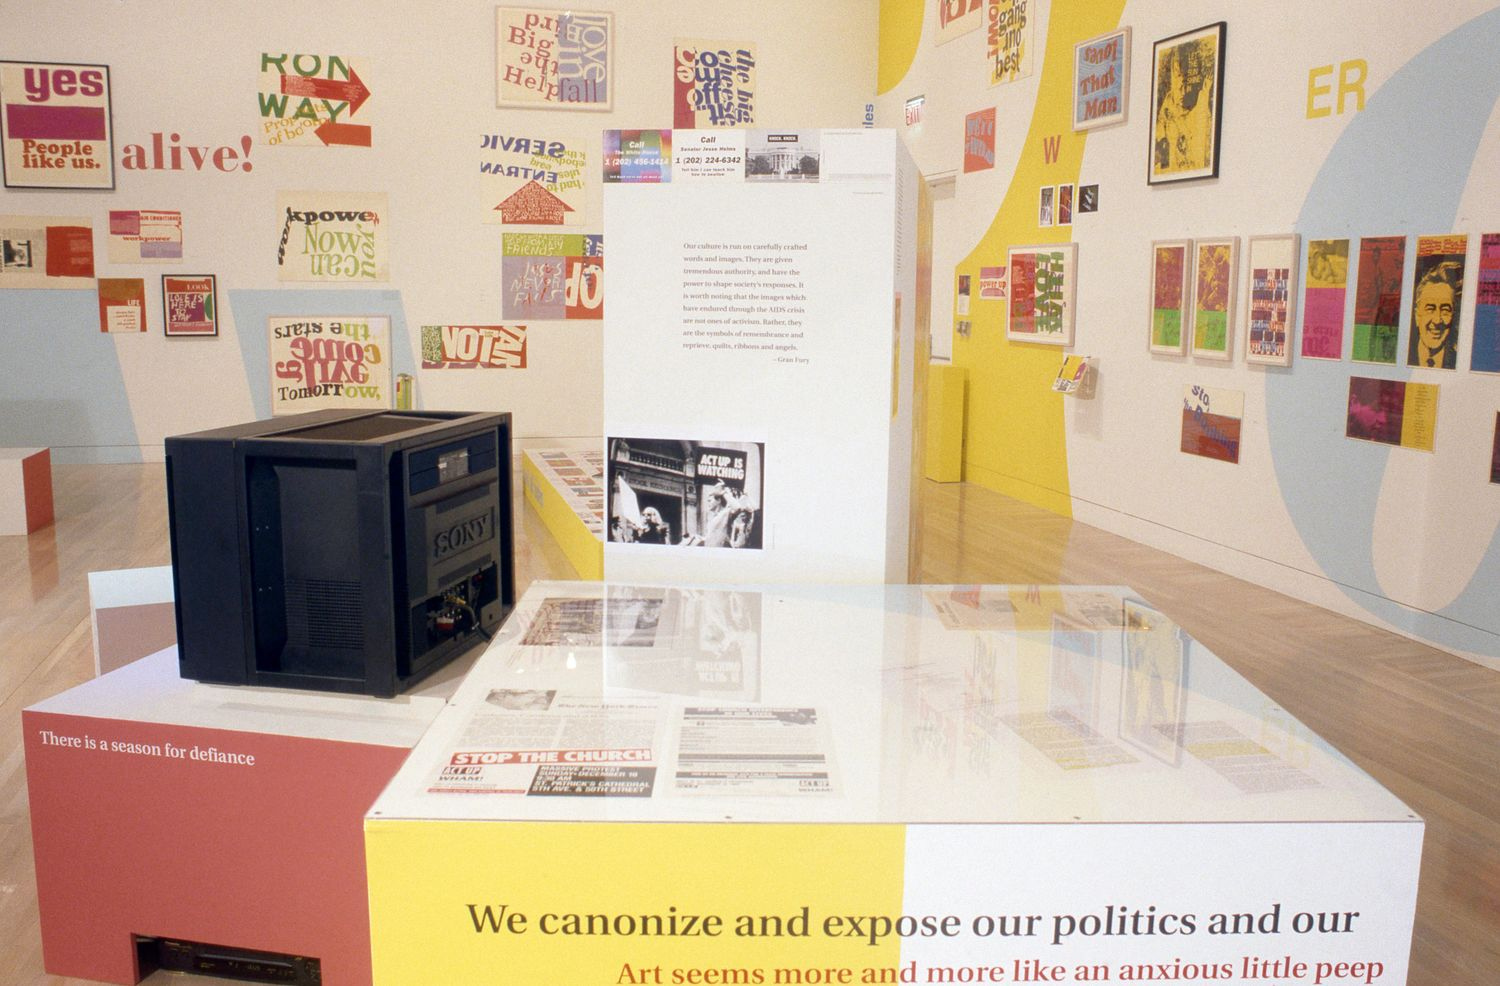 Installation view of Power Up: Sister Corita and Donald Moffett, Interlocking at the Hammer Museum, Los Angeles from February 6 – April 2, 2000